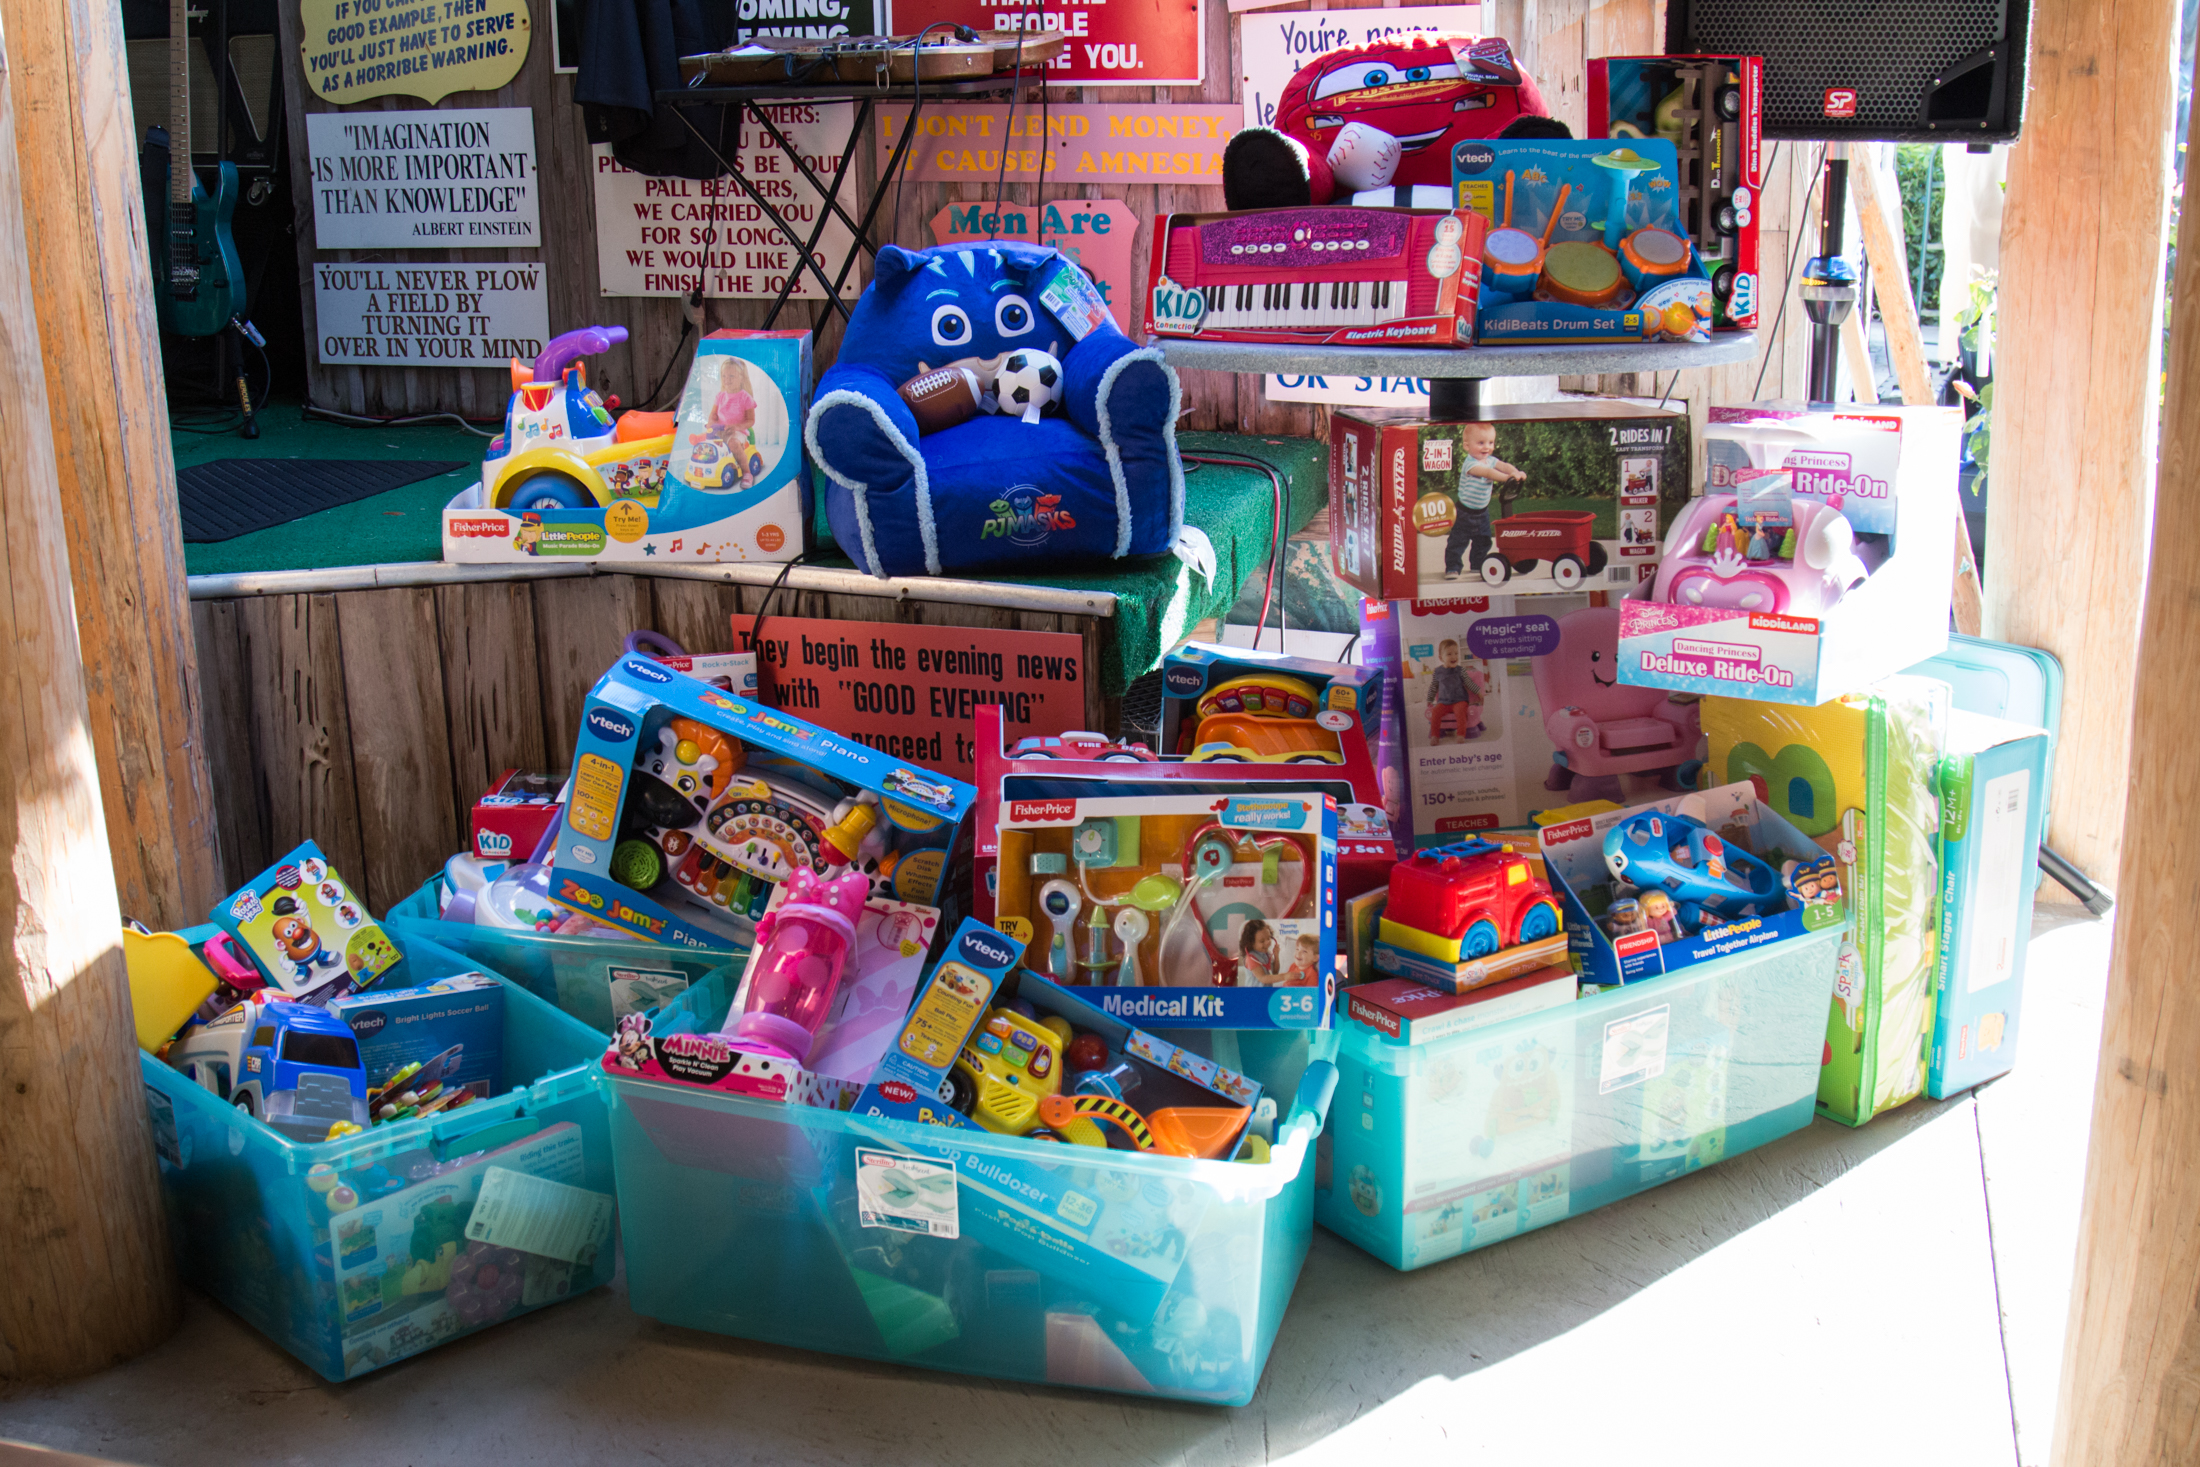 Toys donated to Martin Health System